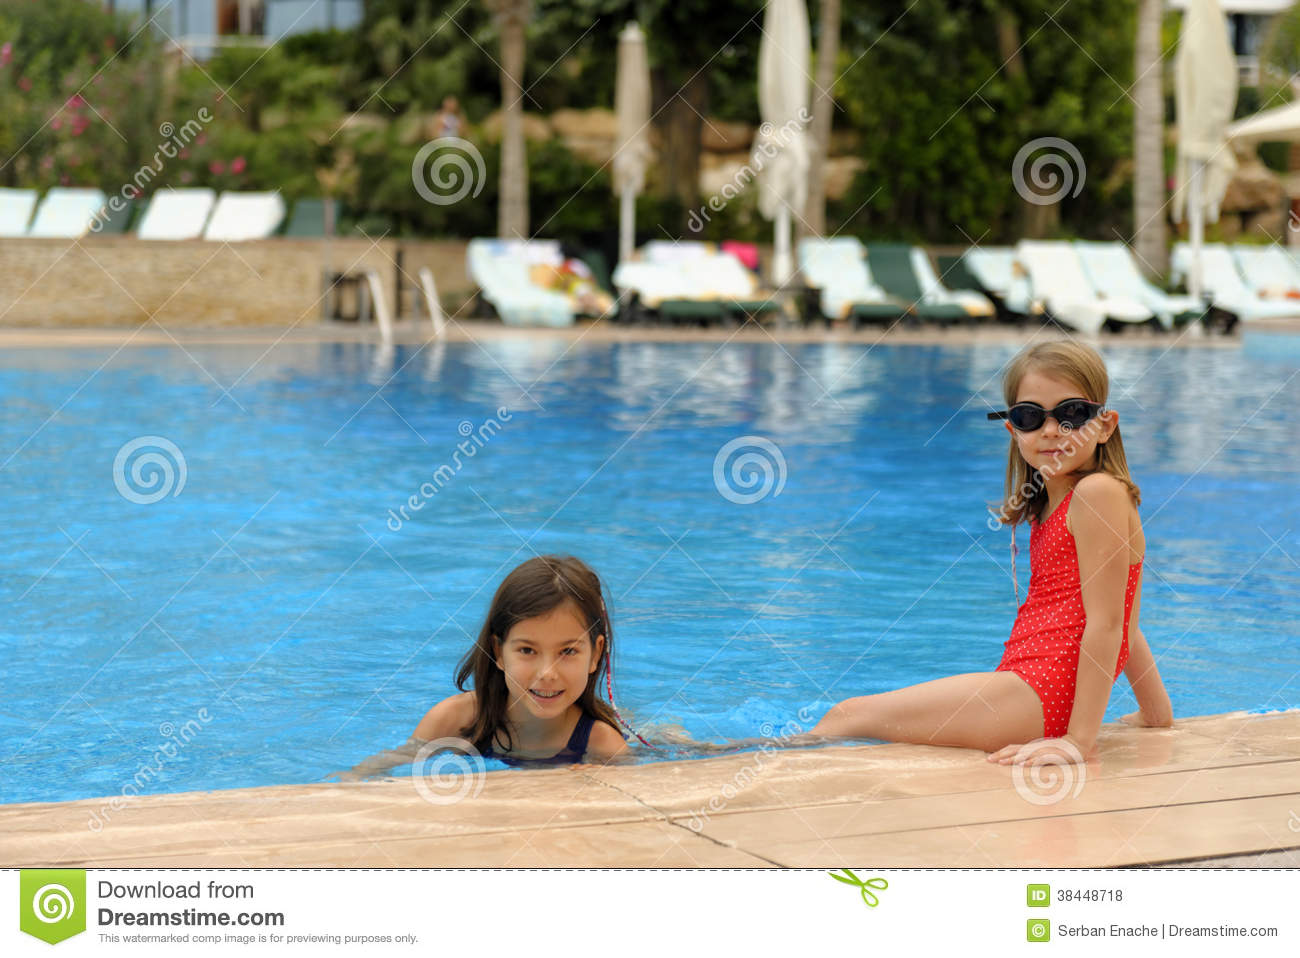 Jeunes filles au bord de la piscine photo stock image du for Bord de piscine